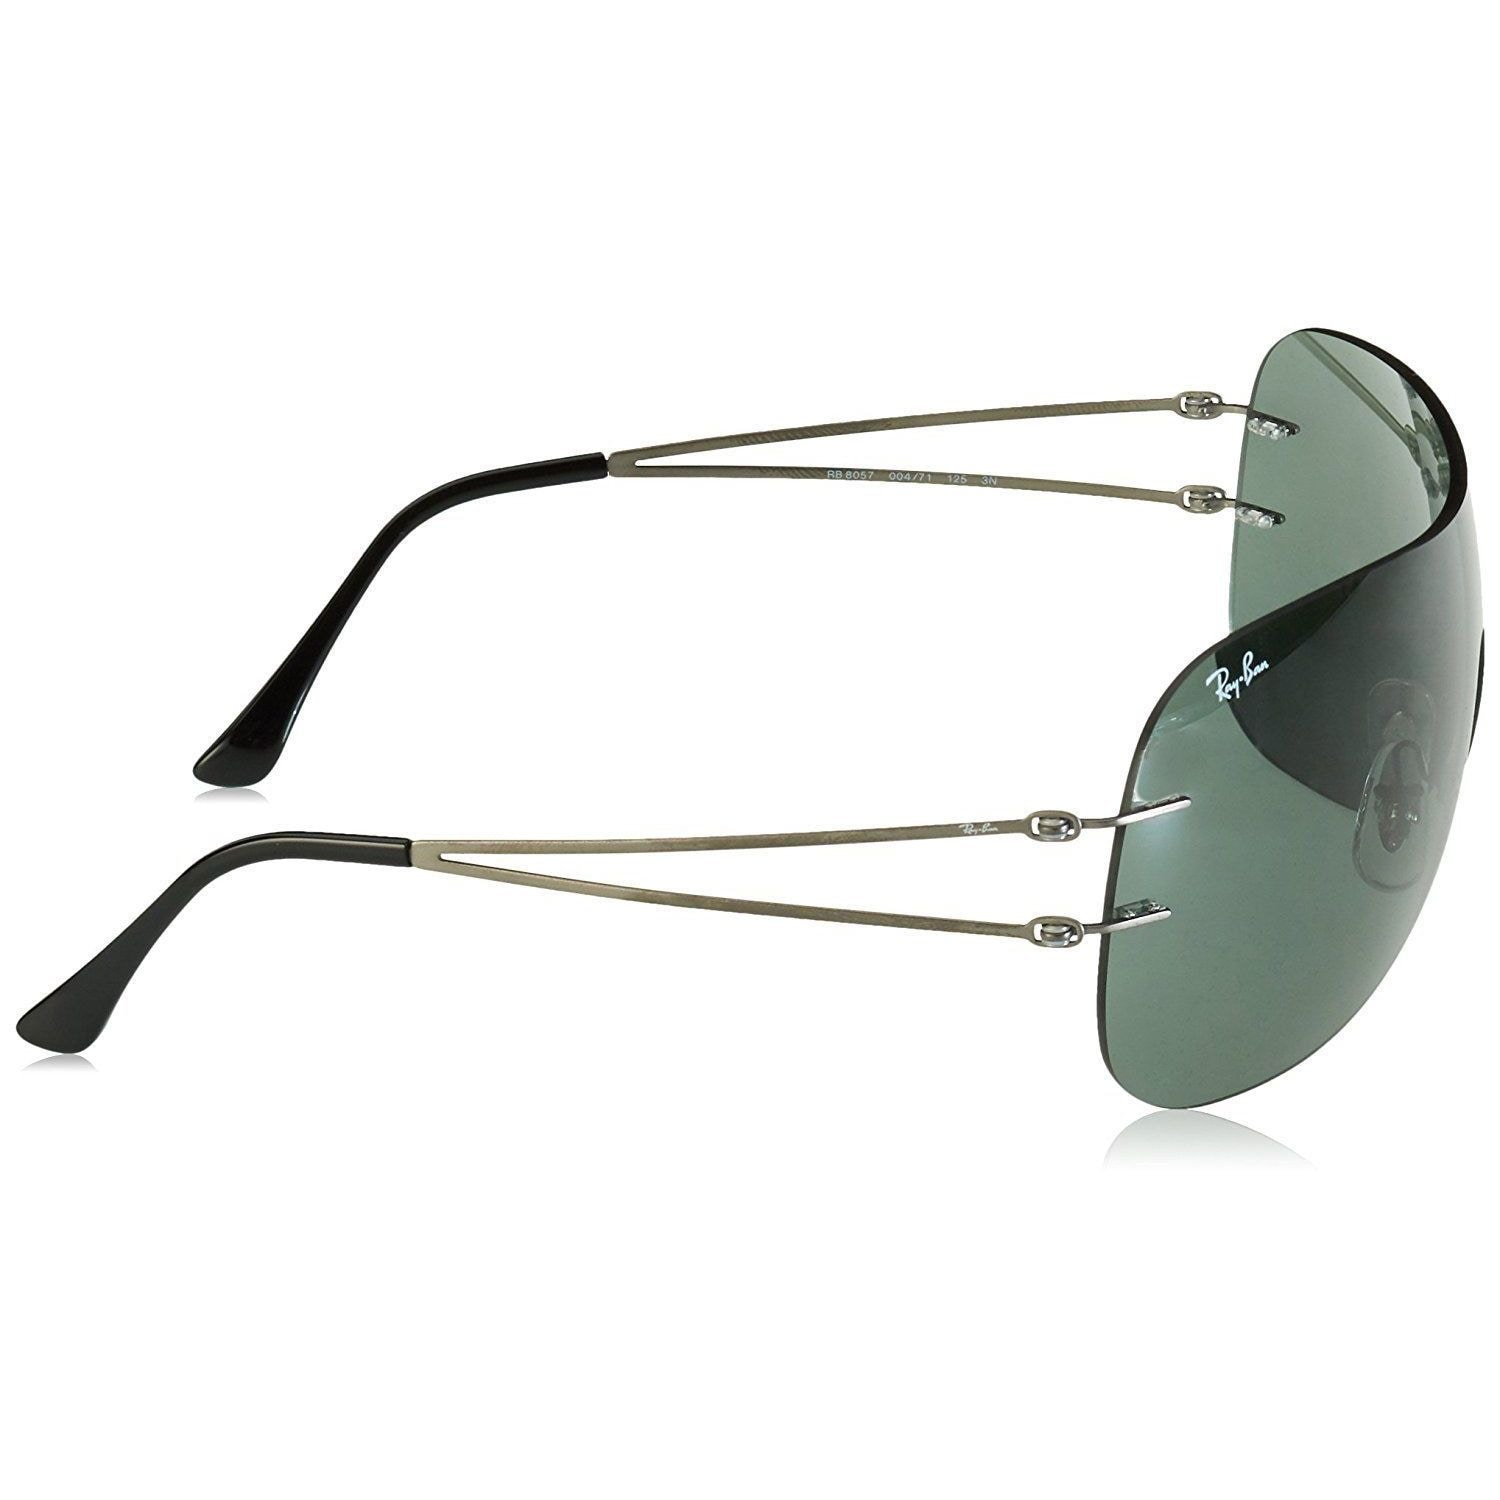 a2ab4ca41d2 Shop Ray-Ban RB8057 Unisex Rimless Green Classic Single Lens Sunglasses -  Free Shipping Today - Overstock - 15287214